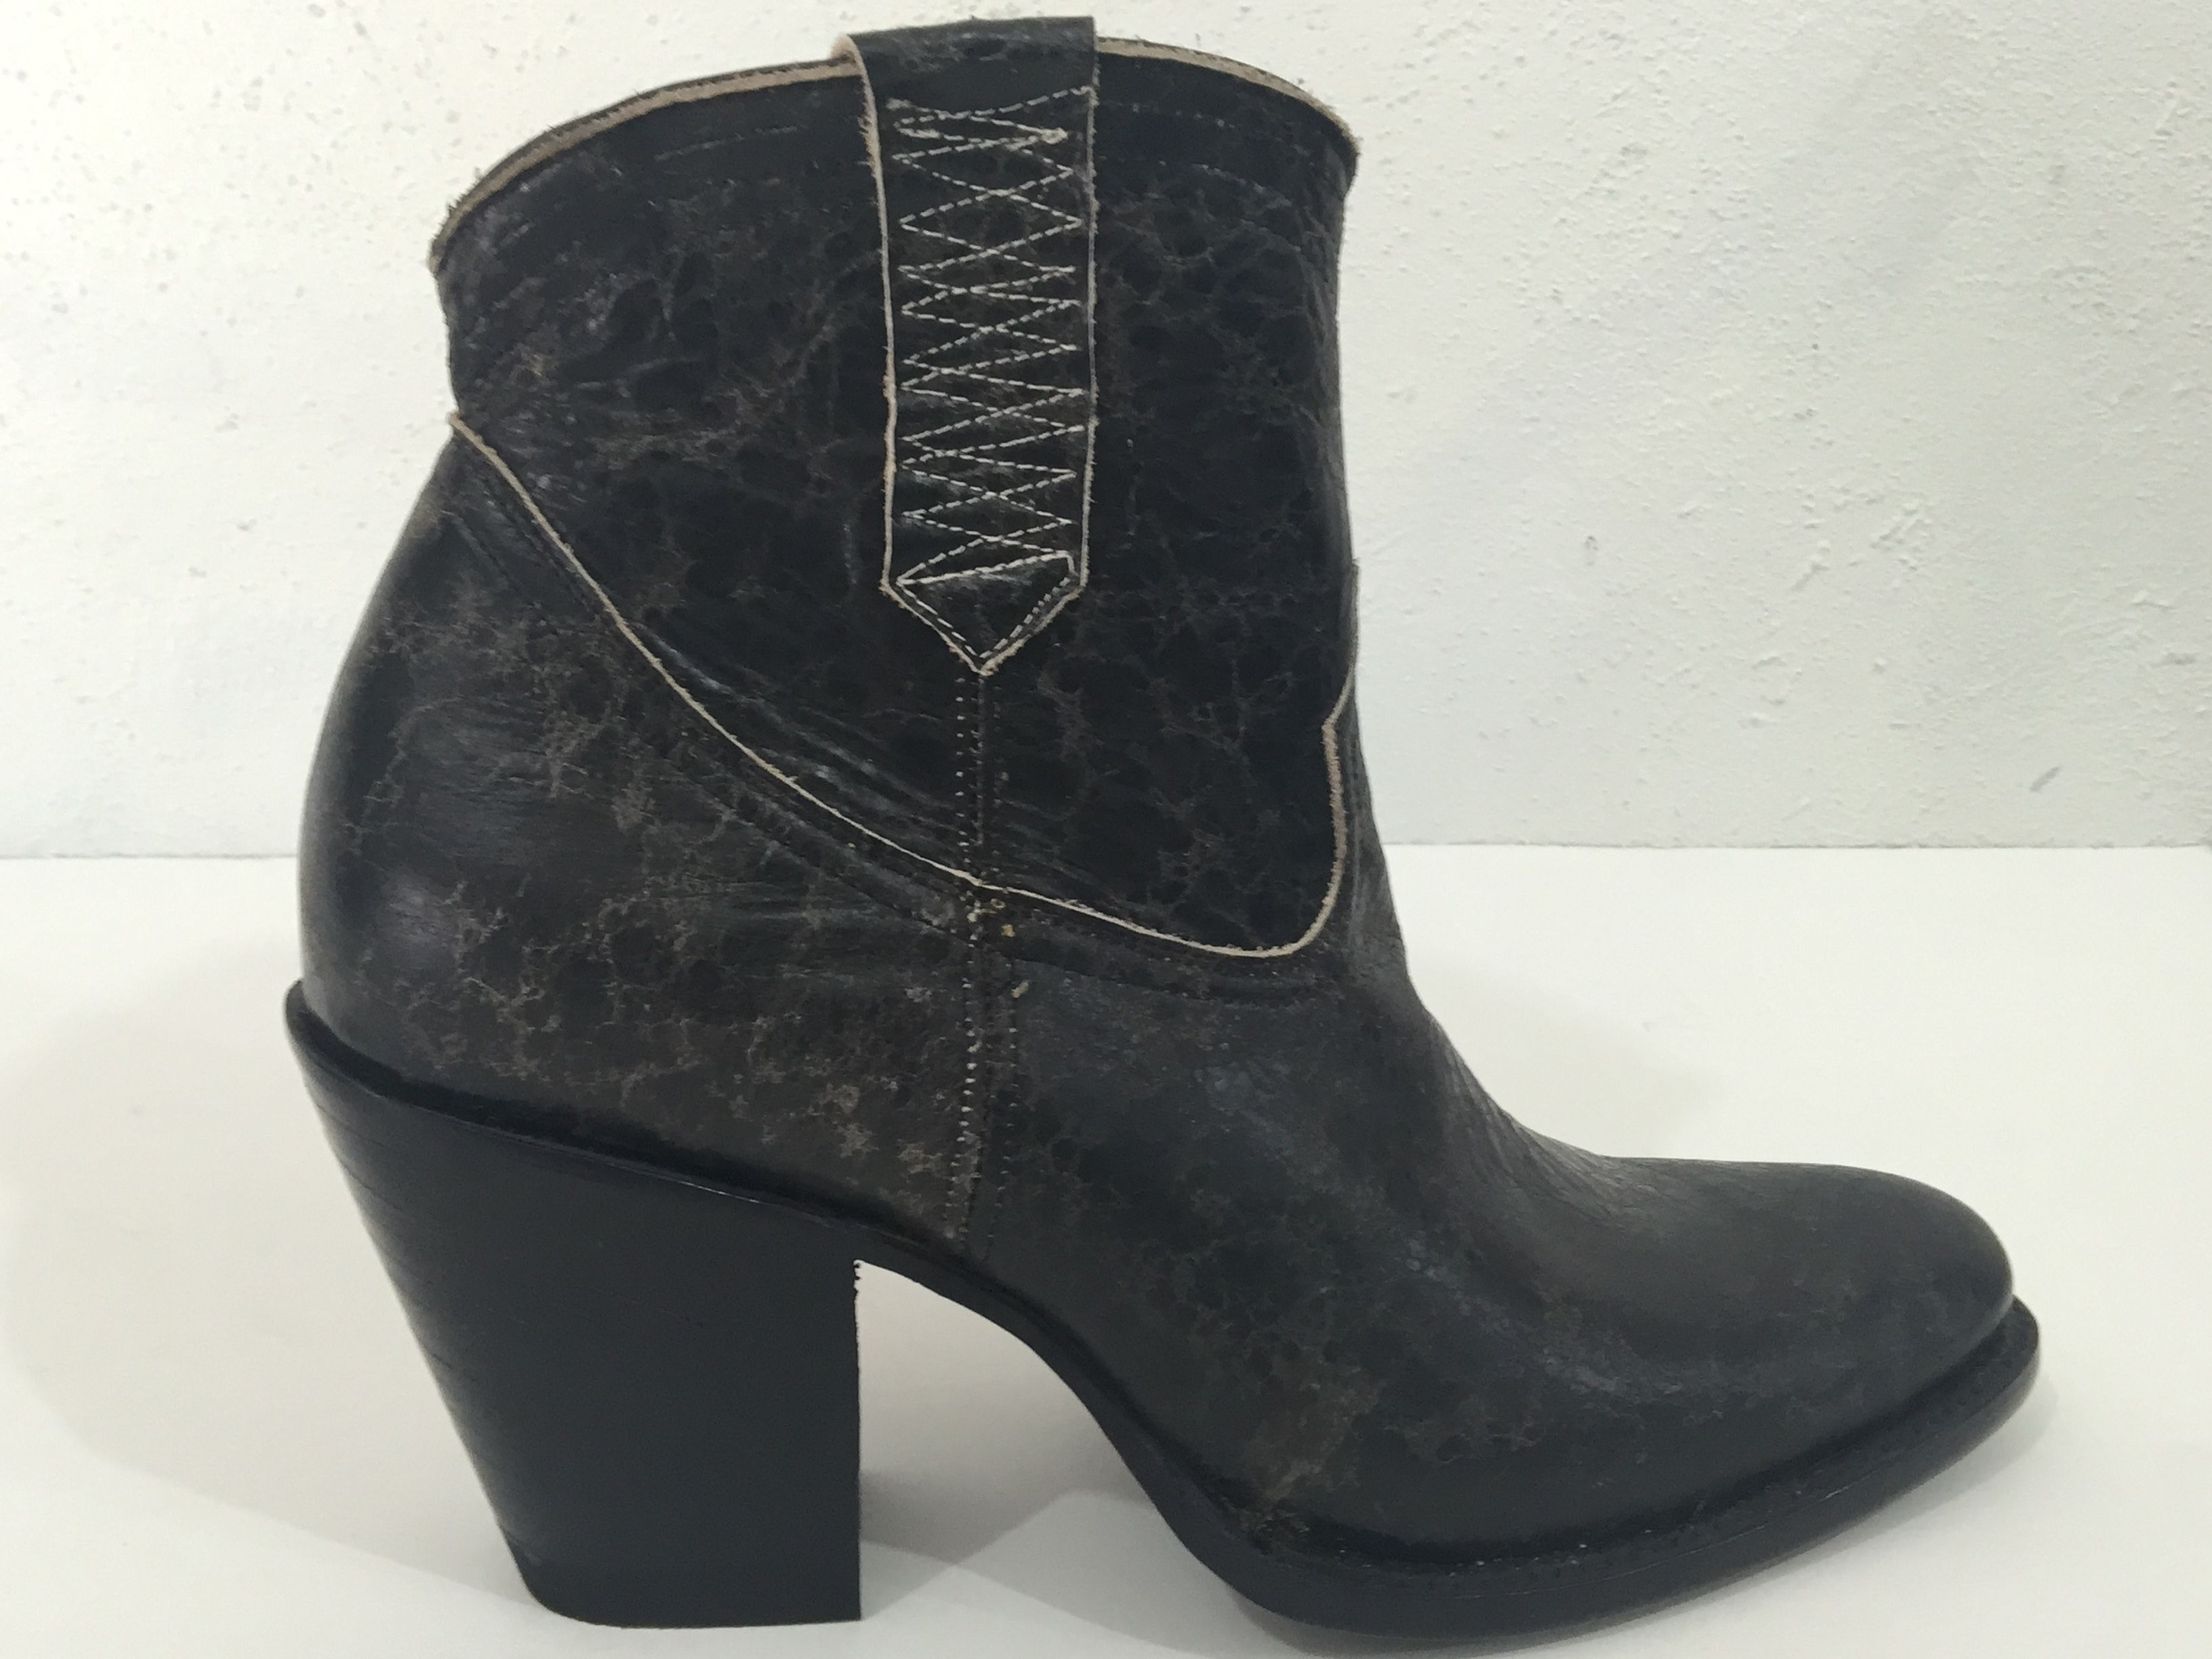 Custom Made Black Distressed Old Look Ankle Boots Round